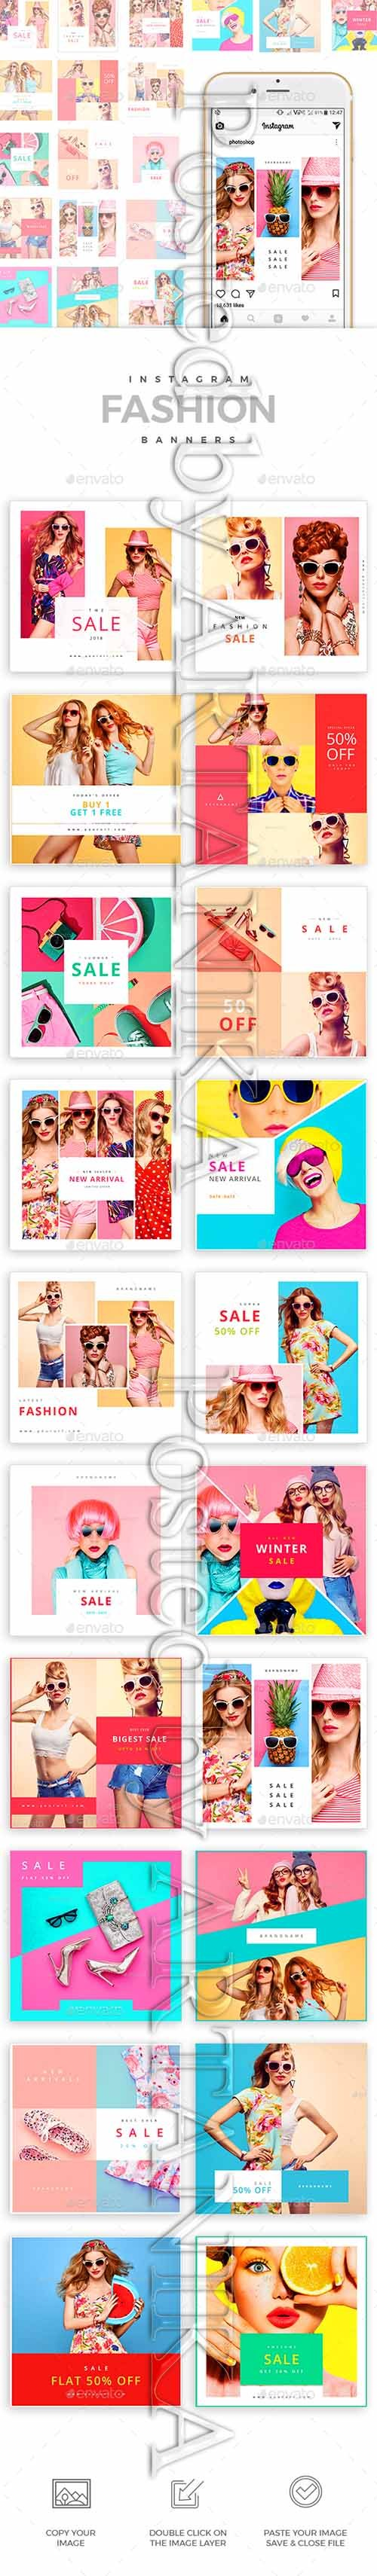 GraphicRiver - 20 - Fashion Instagram Banners 21158757